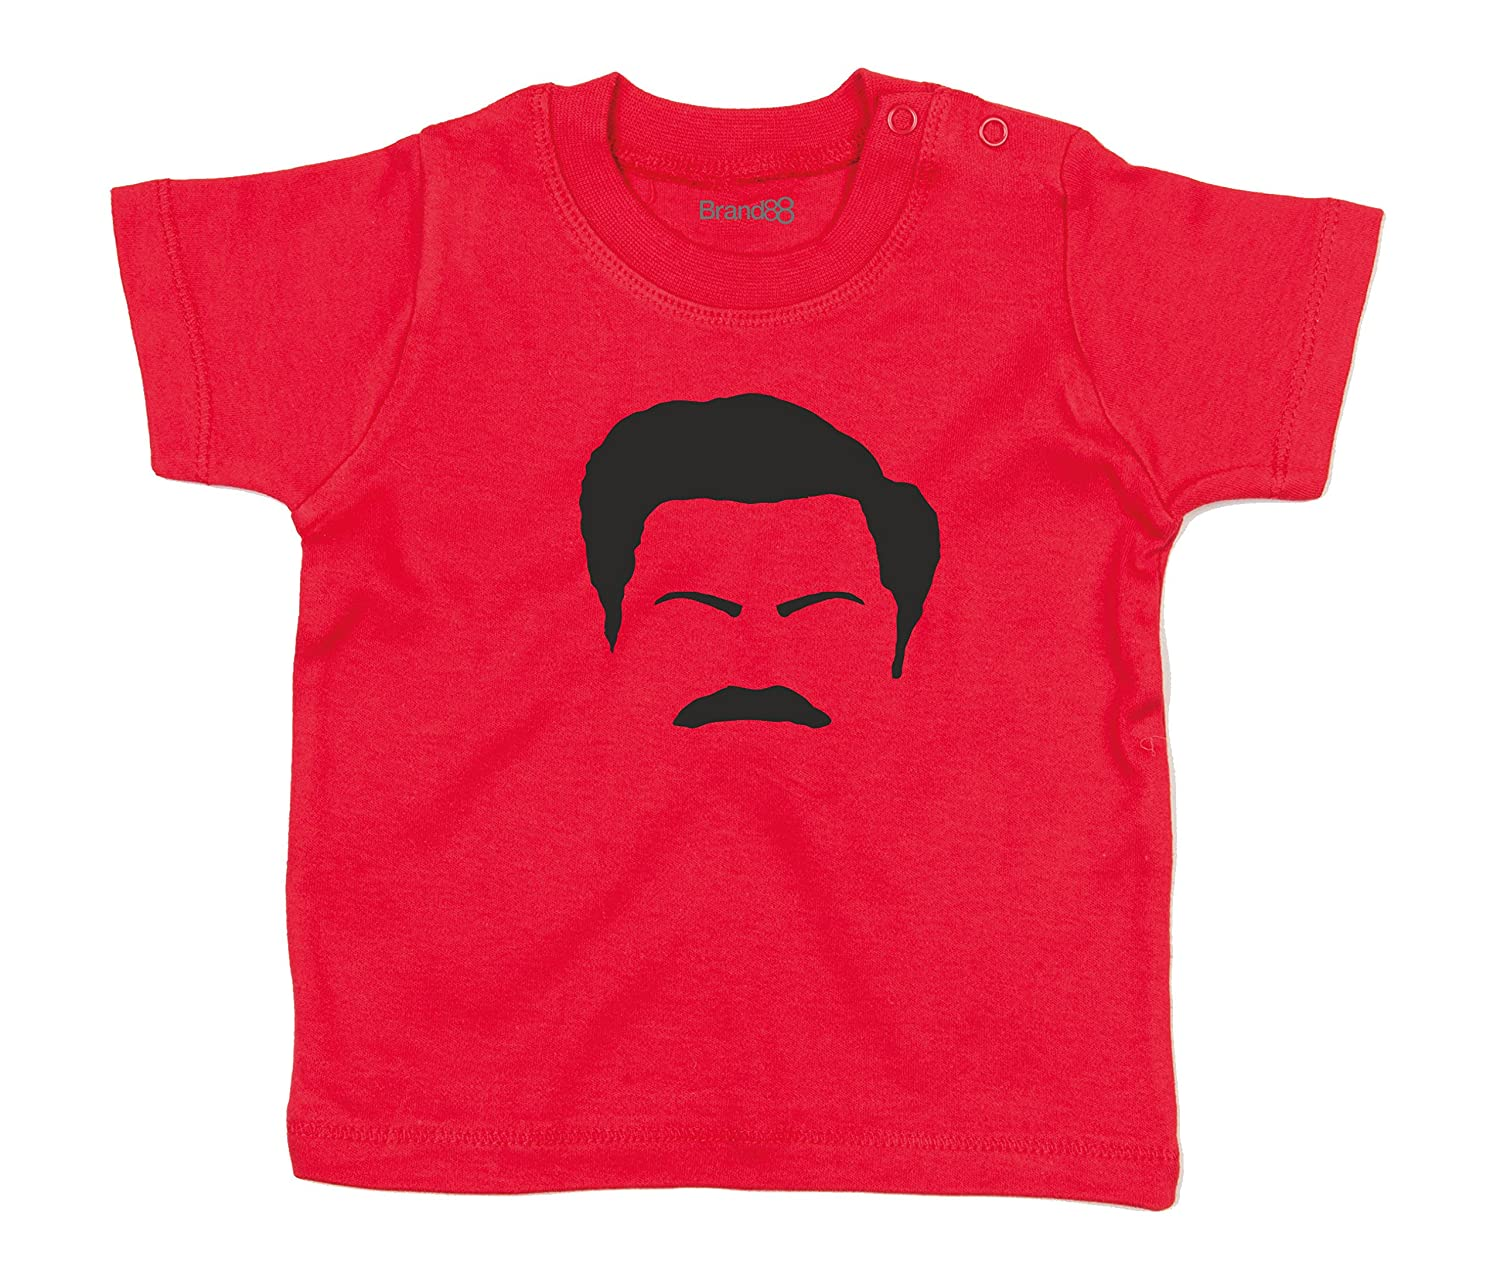 Brand88 Ron Swanson Facial Features, Baby T-Shirt BZ002_NY050